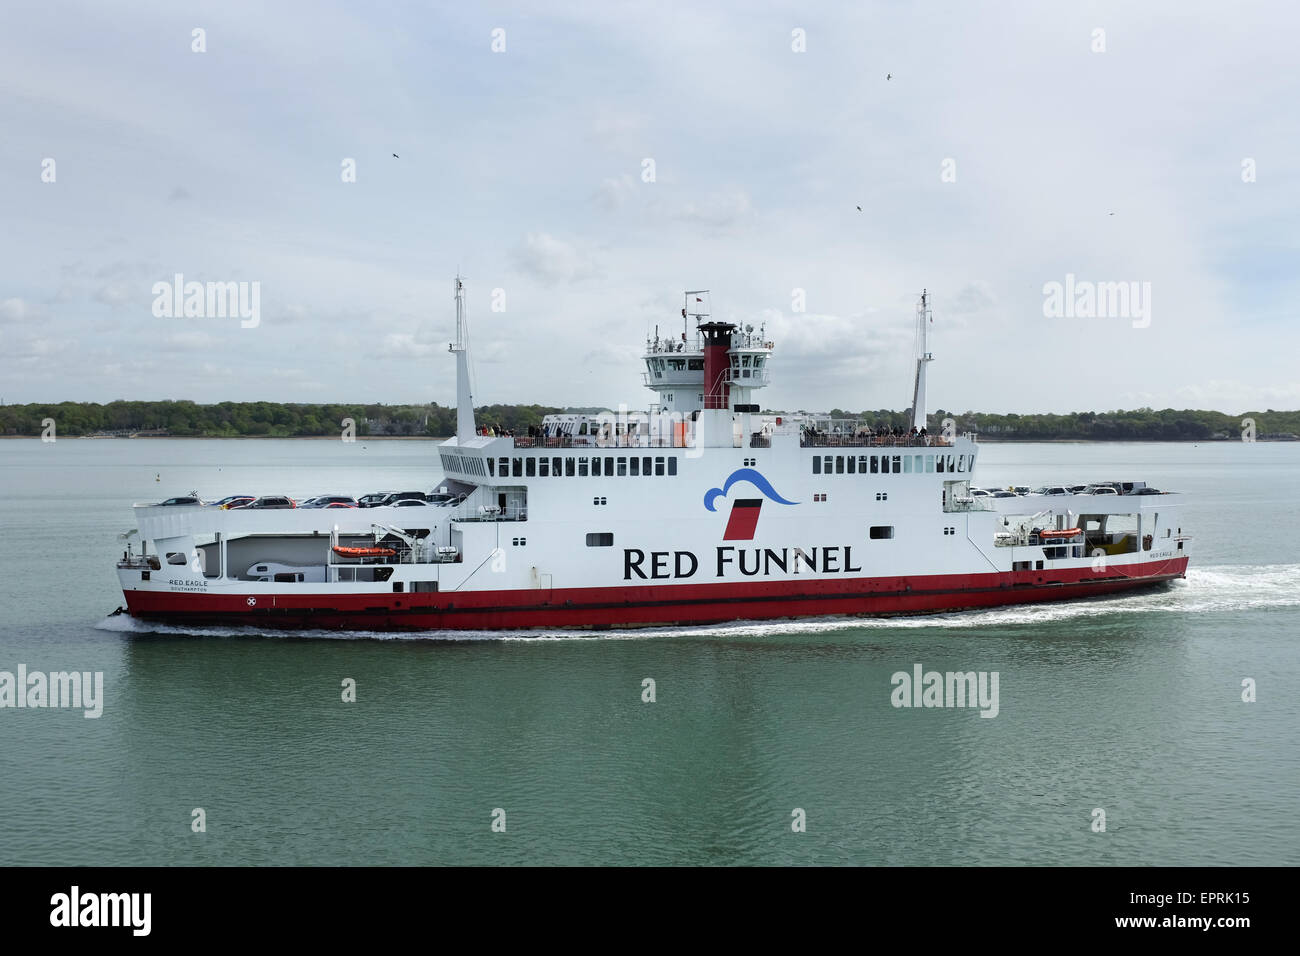 A Red Funnel ferry that sails between Southampton and Cowes on the Isle of Wight, U.K. Stock Photo